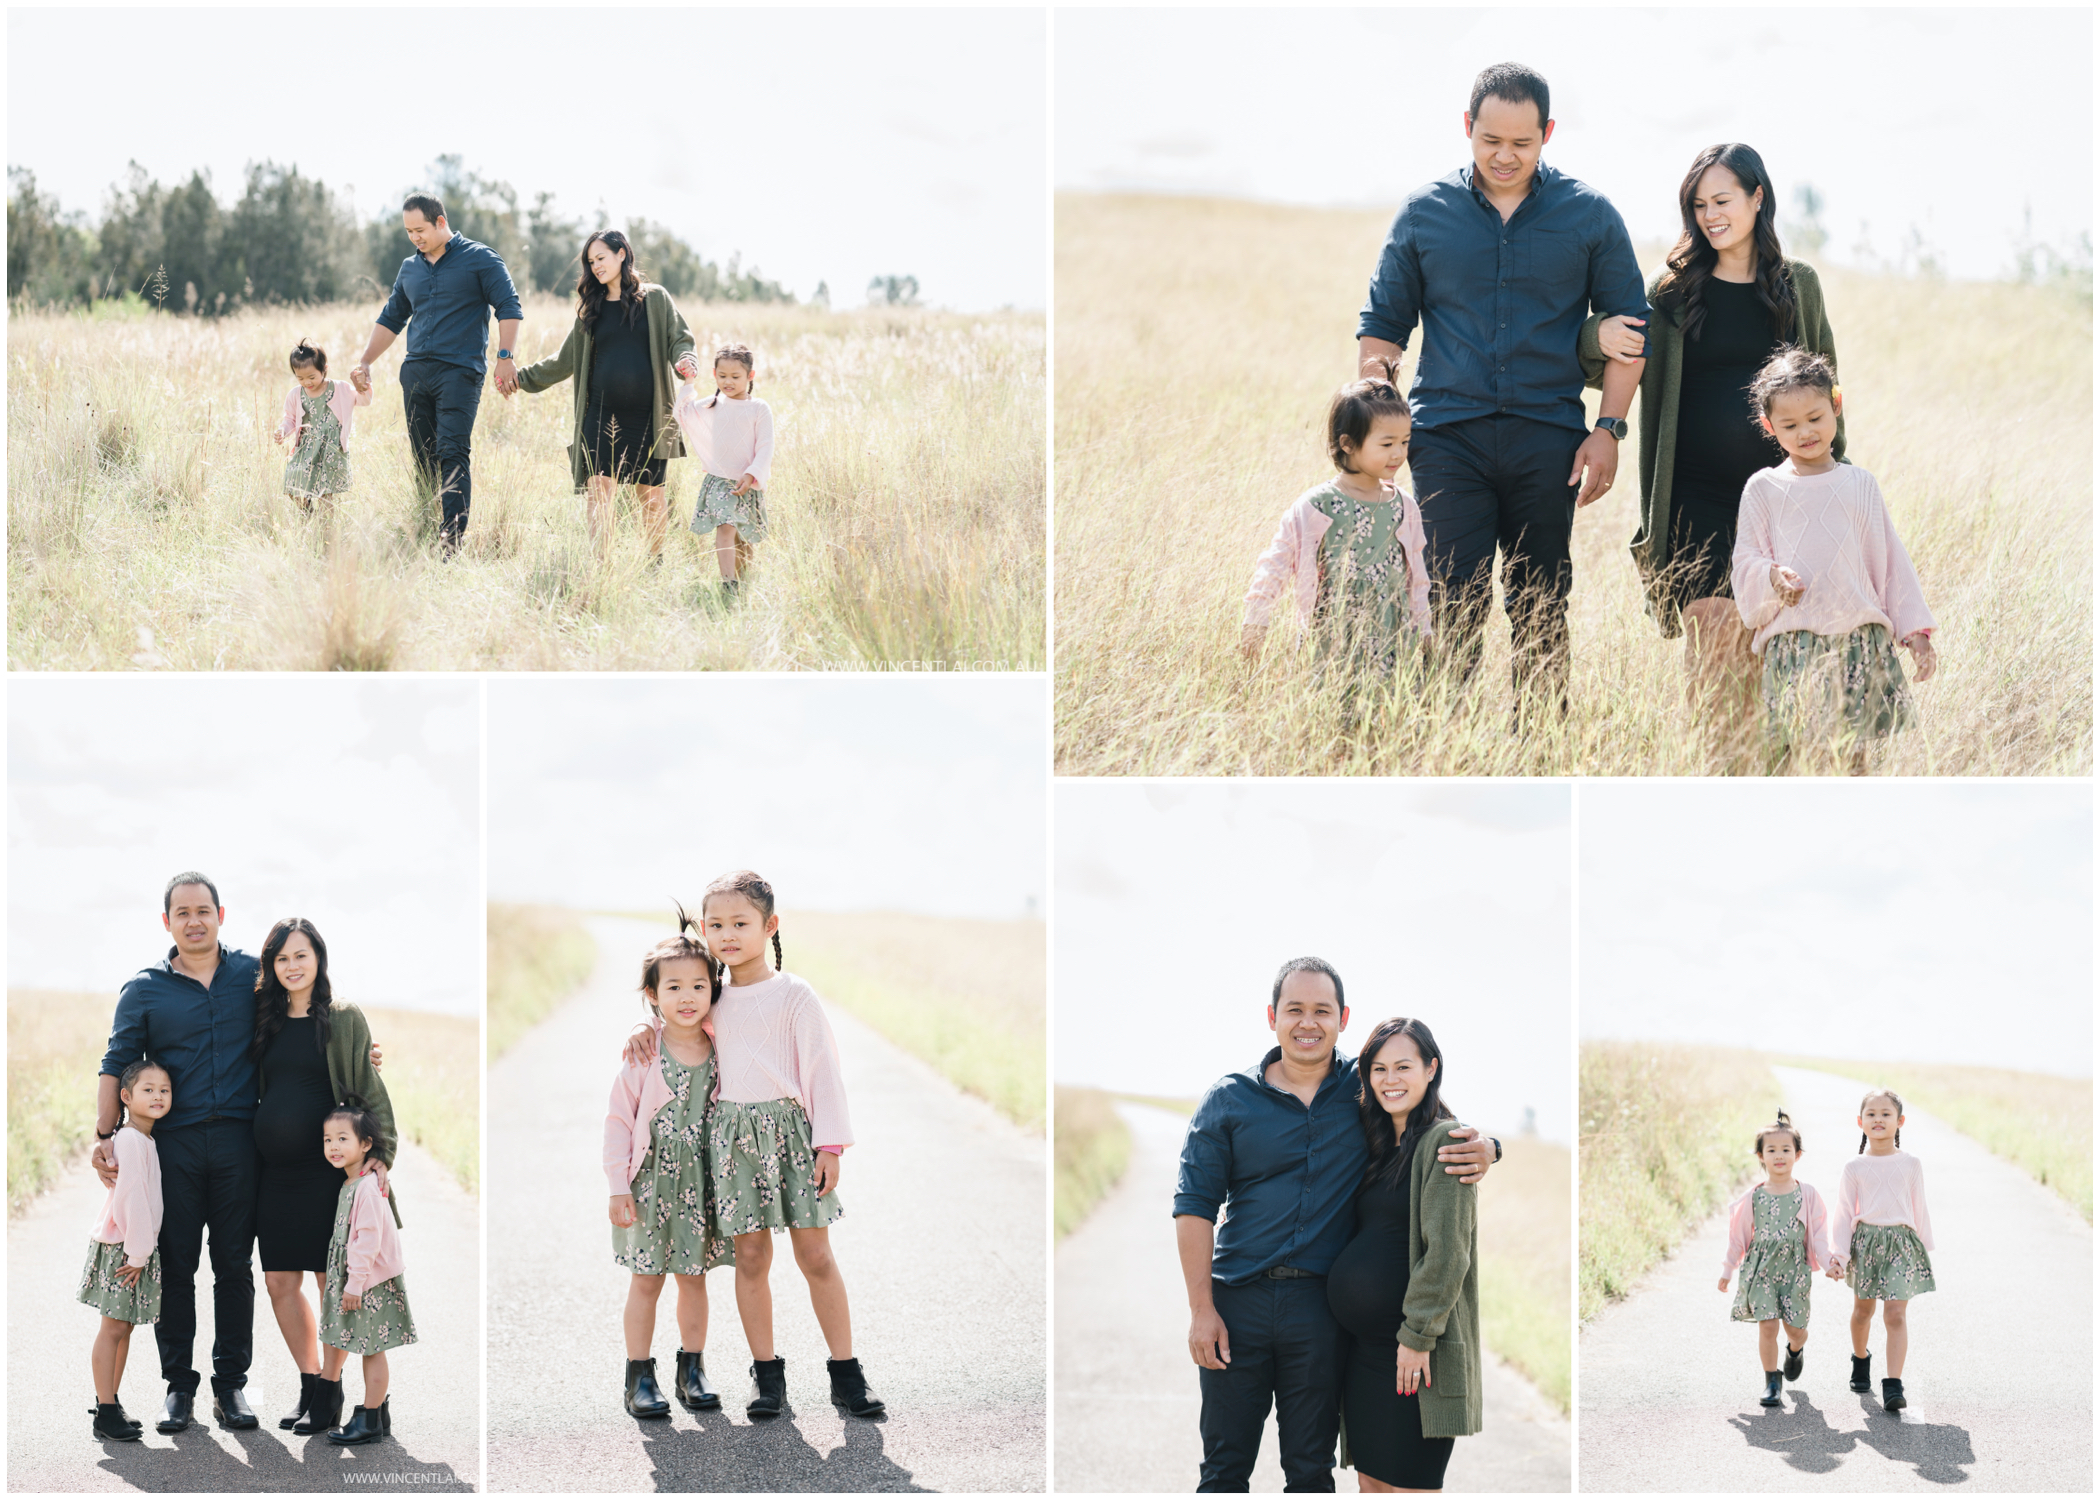 Outdoor Lifestyle Family Portrait Photography